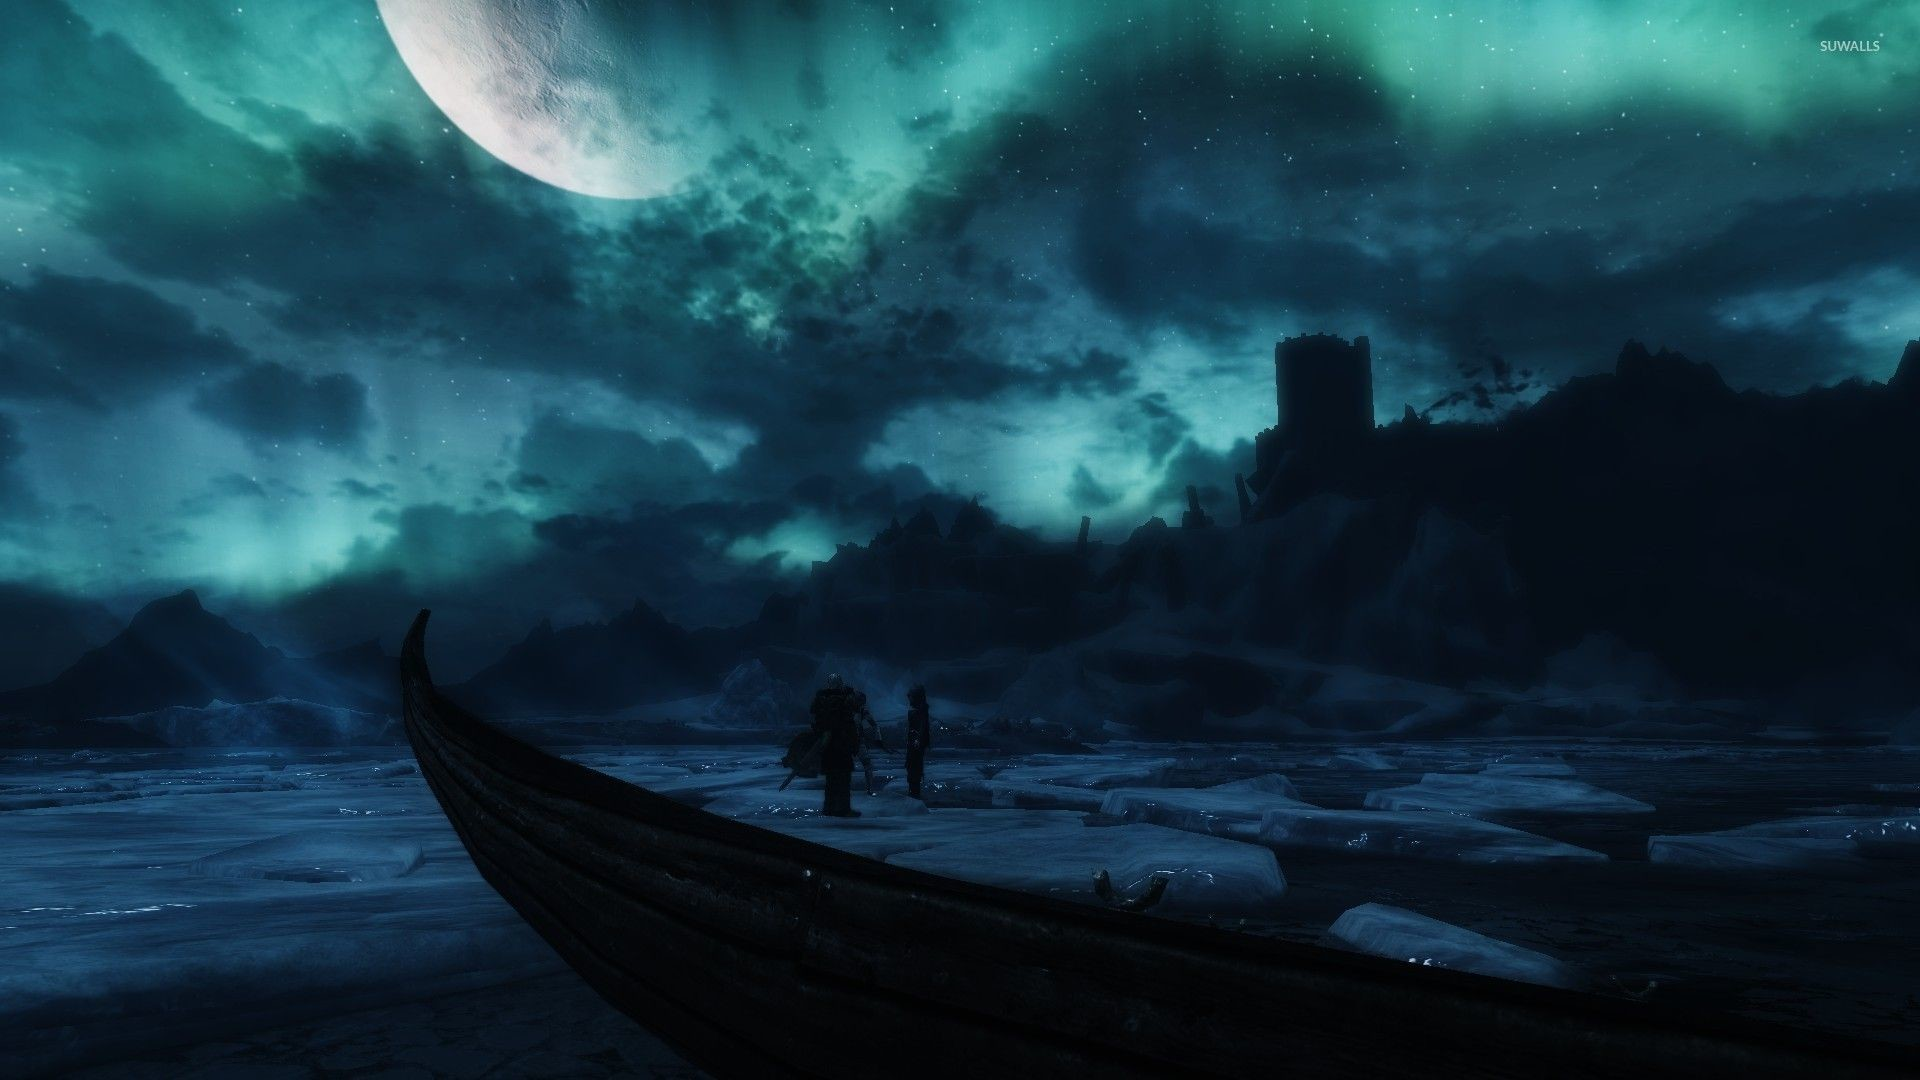 skyrim epic, skyrim wallpaper 1080p